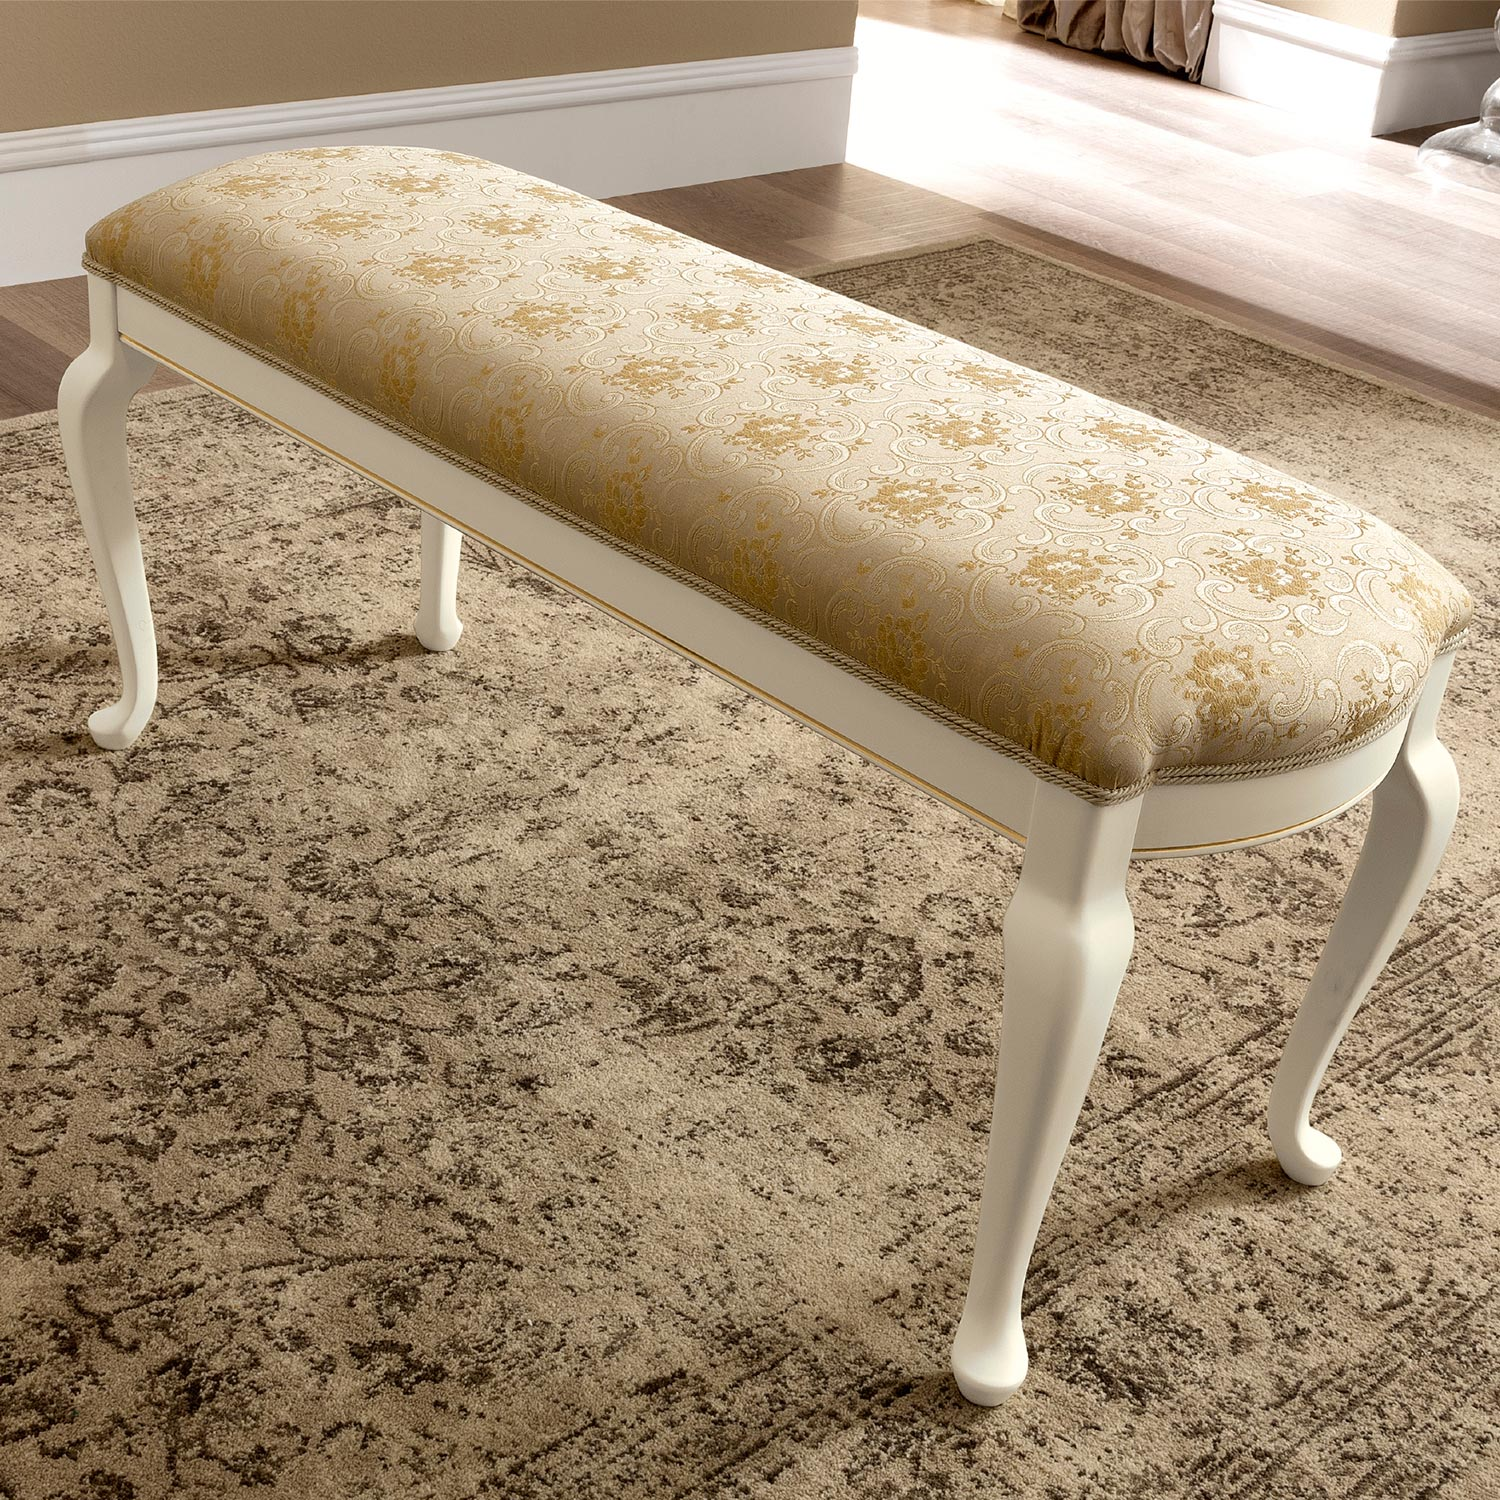 Treviso Ivory Ash Dressing Table Bench